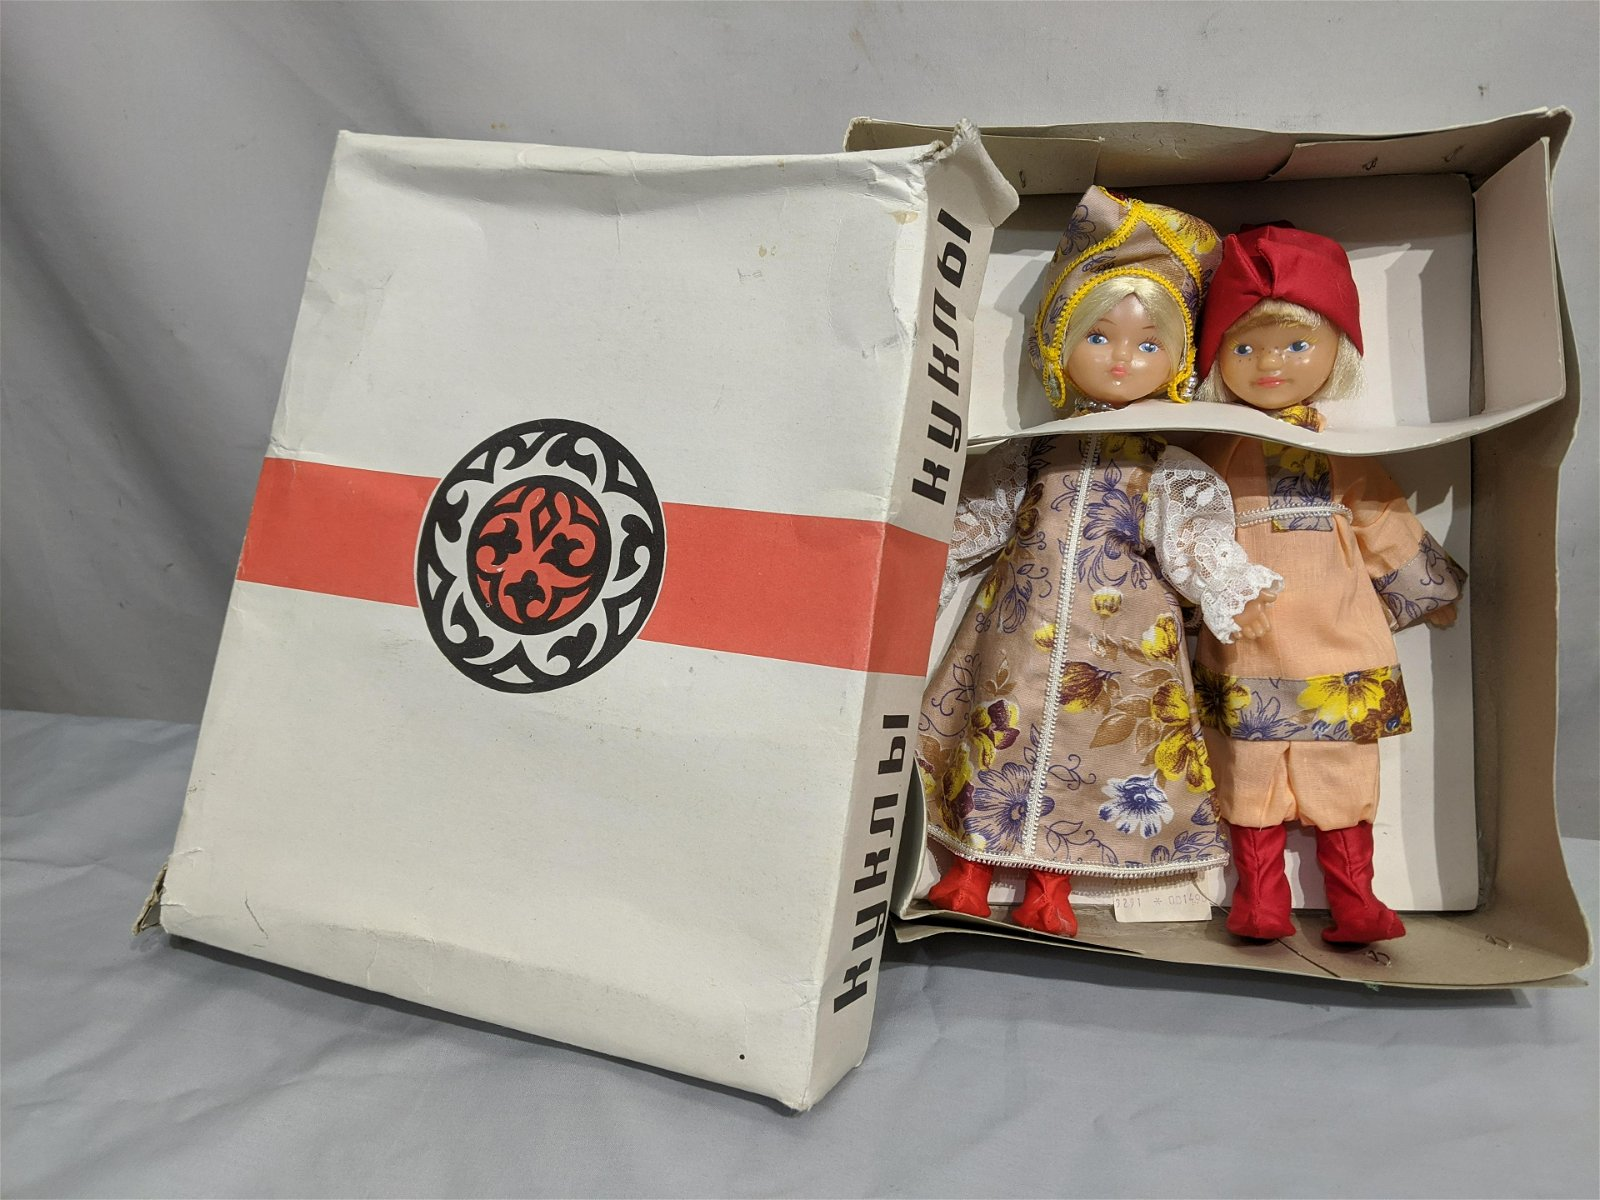 1987 Kyknbl Russian Cell-Plastic 2 Dolls in Original